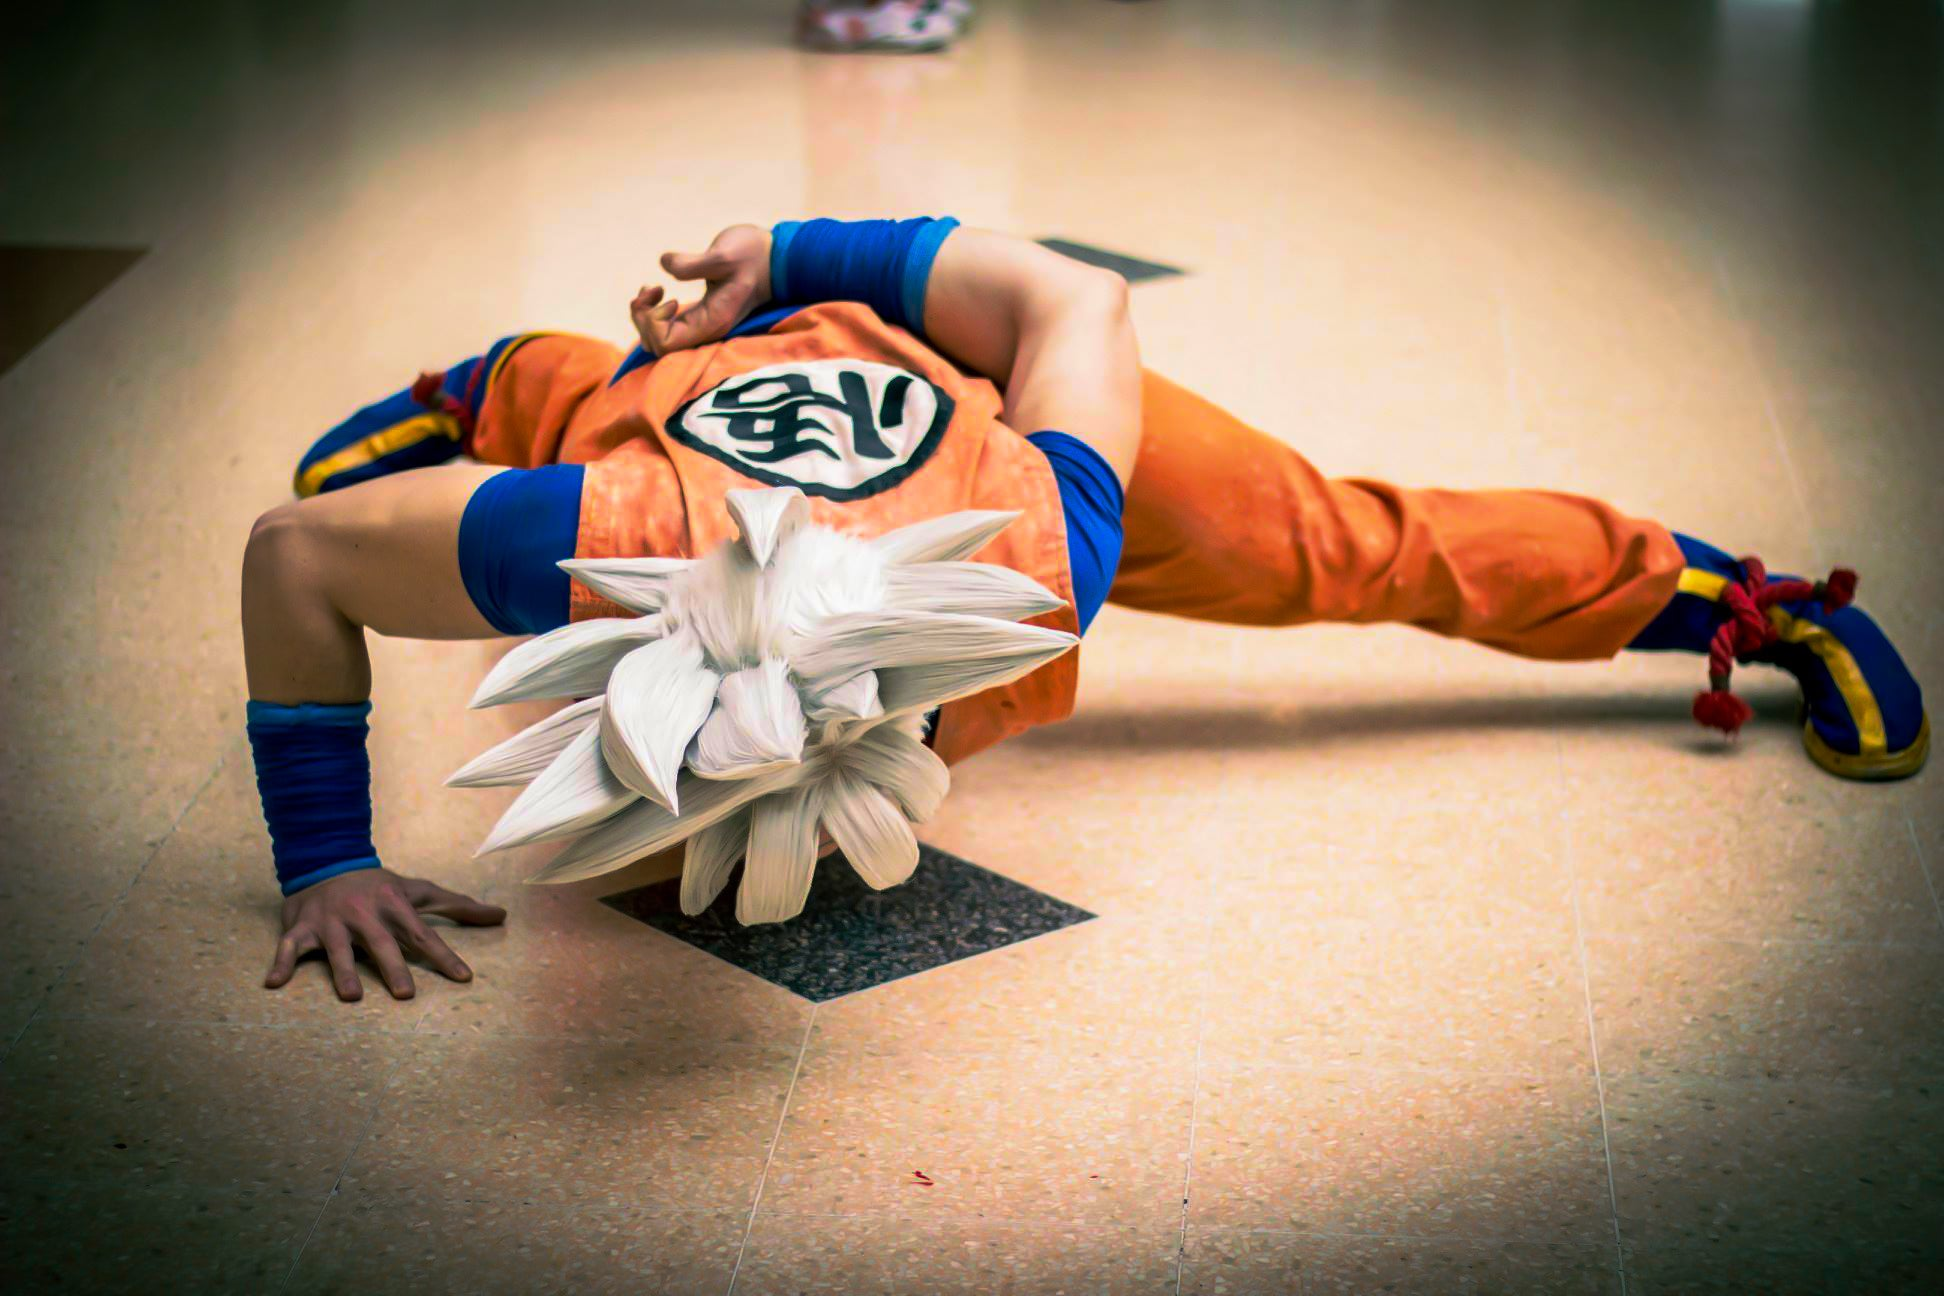 How to train like Goku in real life: combining strength training and callisthenics anime style for cosplay fitness